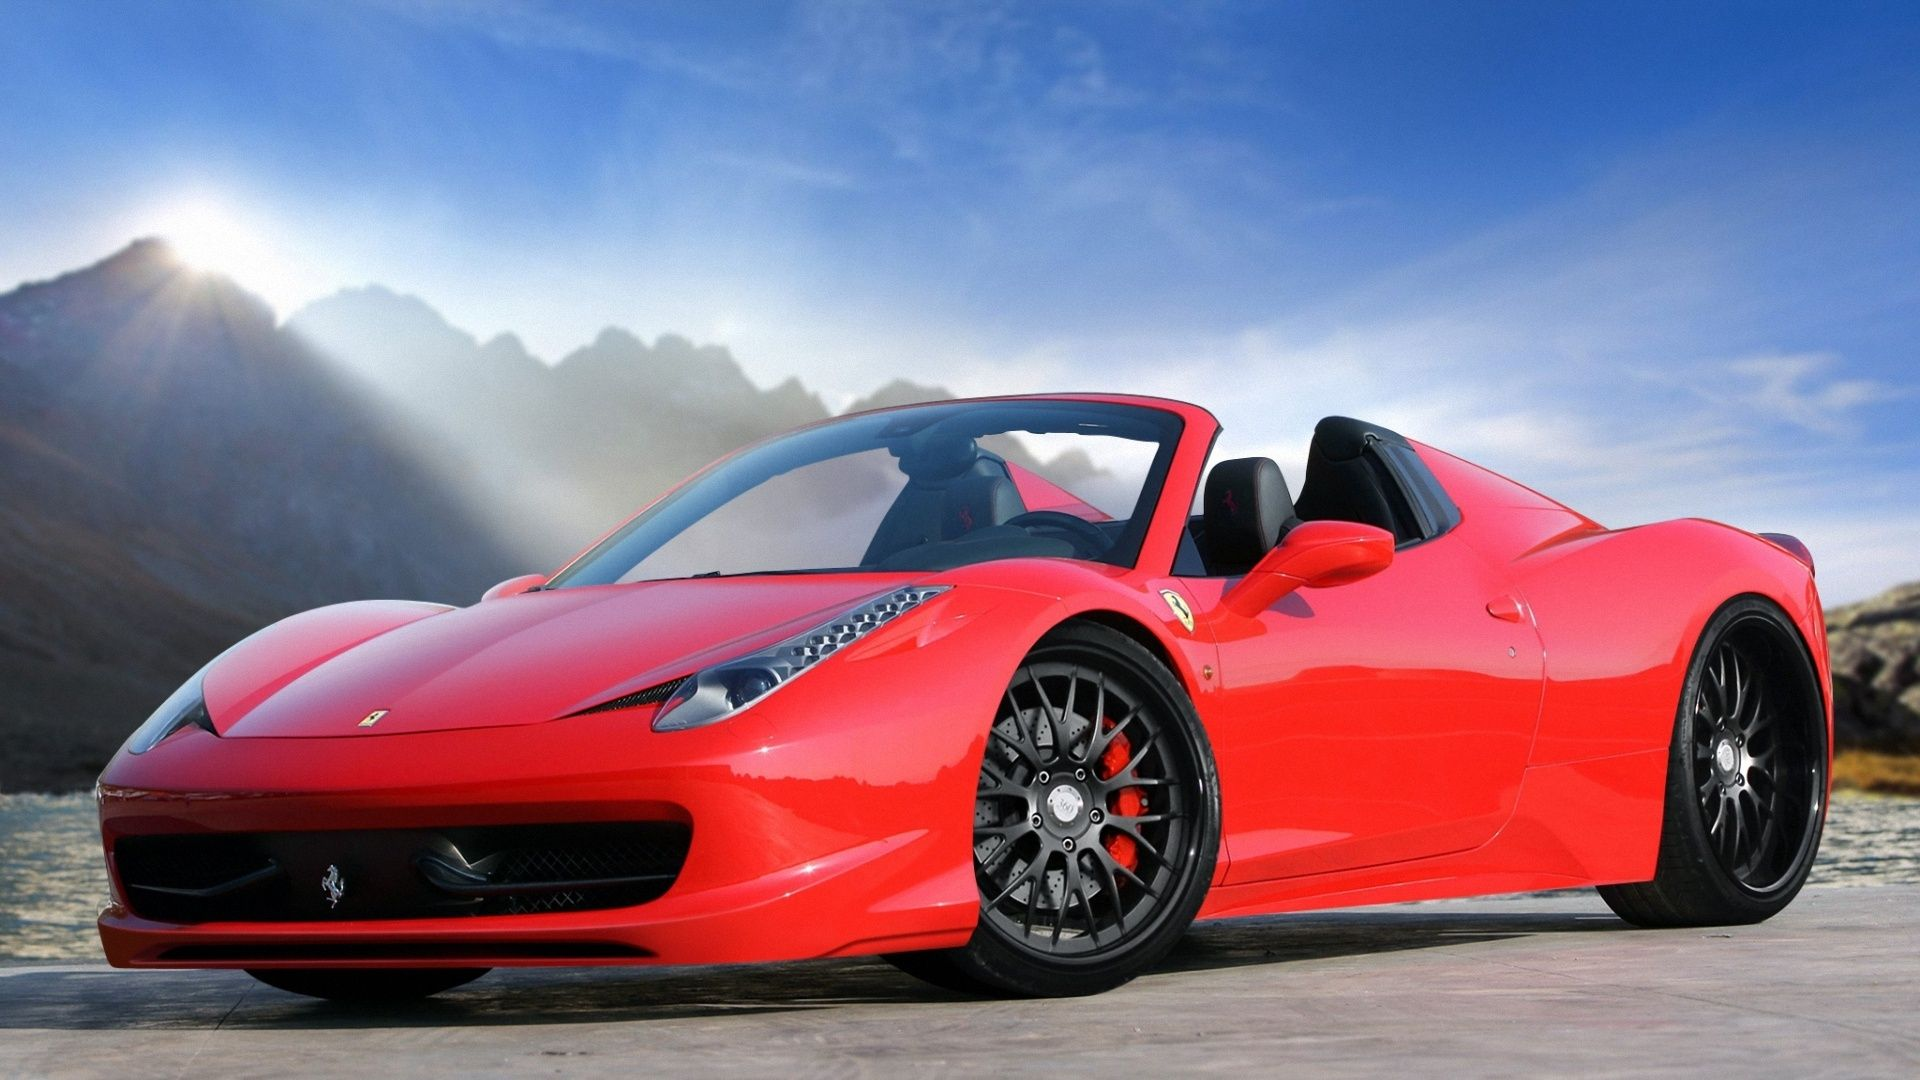 Ferrari Hd 1080p Wallpaper Download Free Red Ferrari 1080p